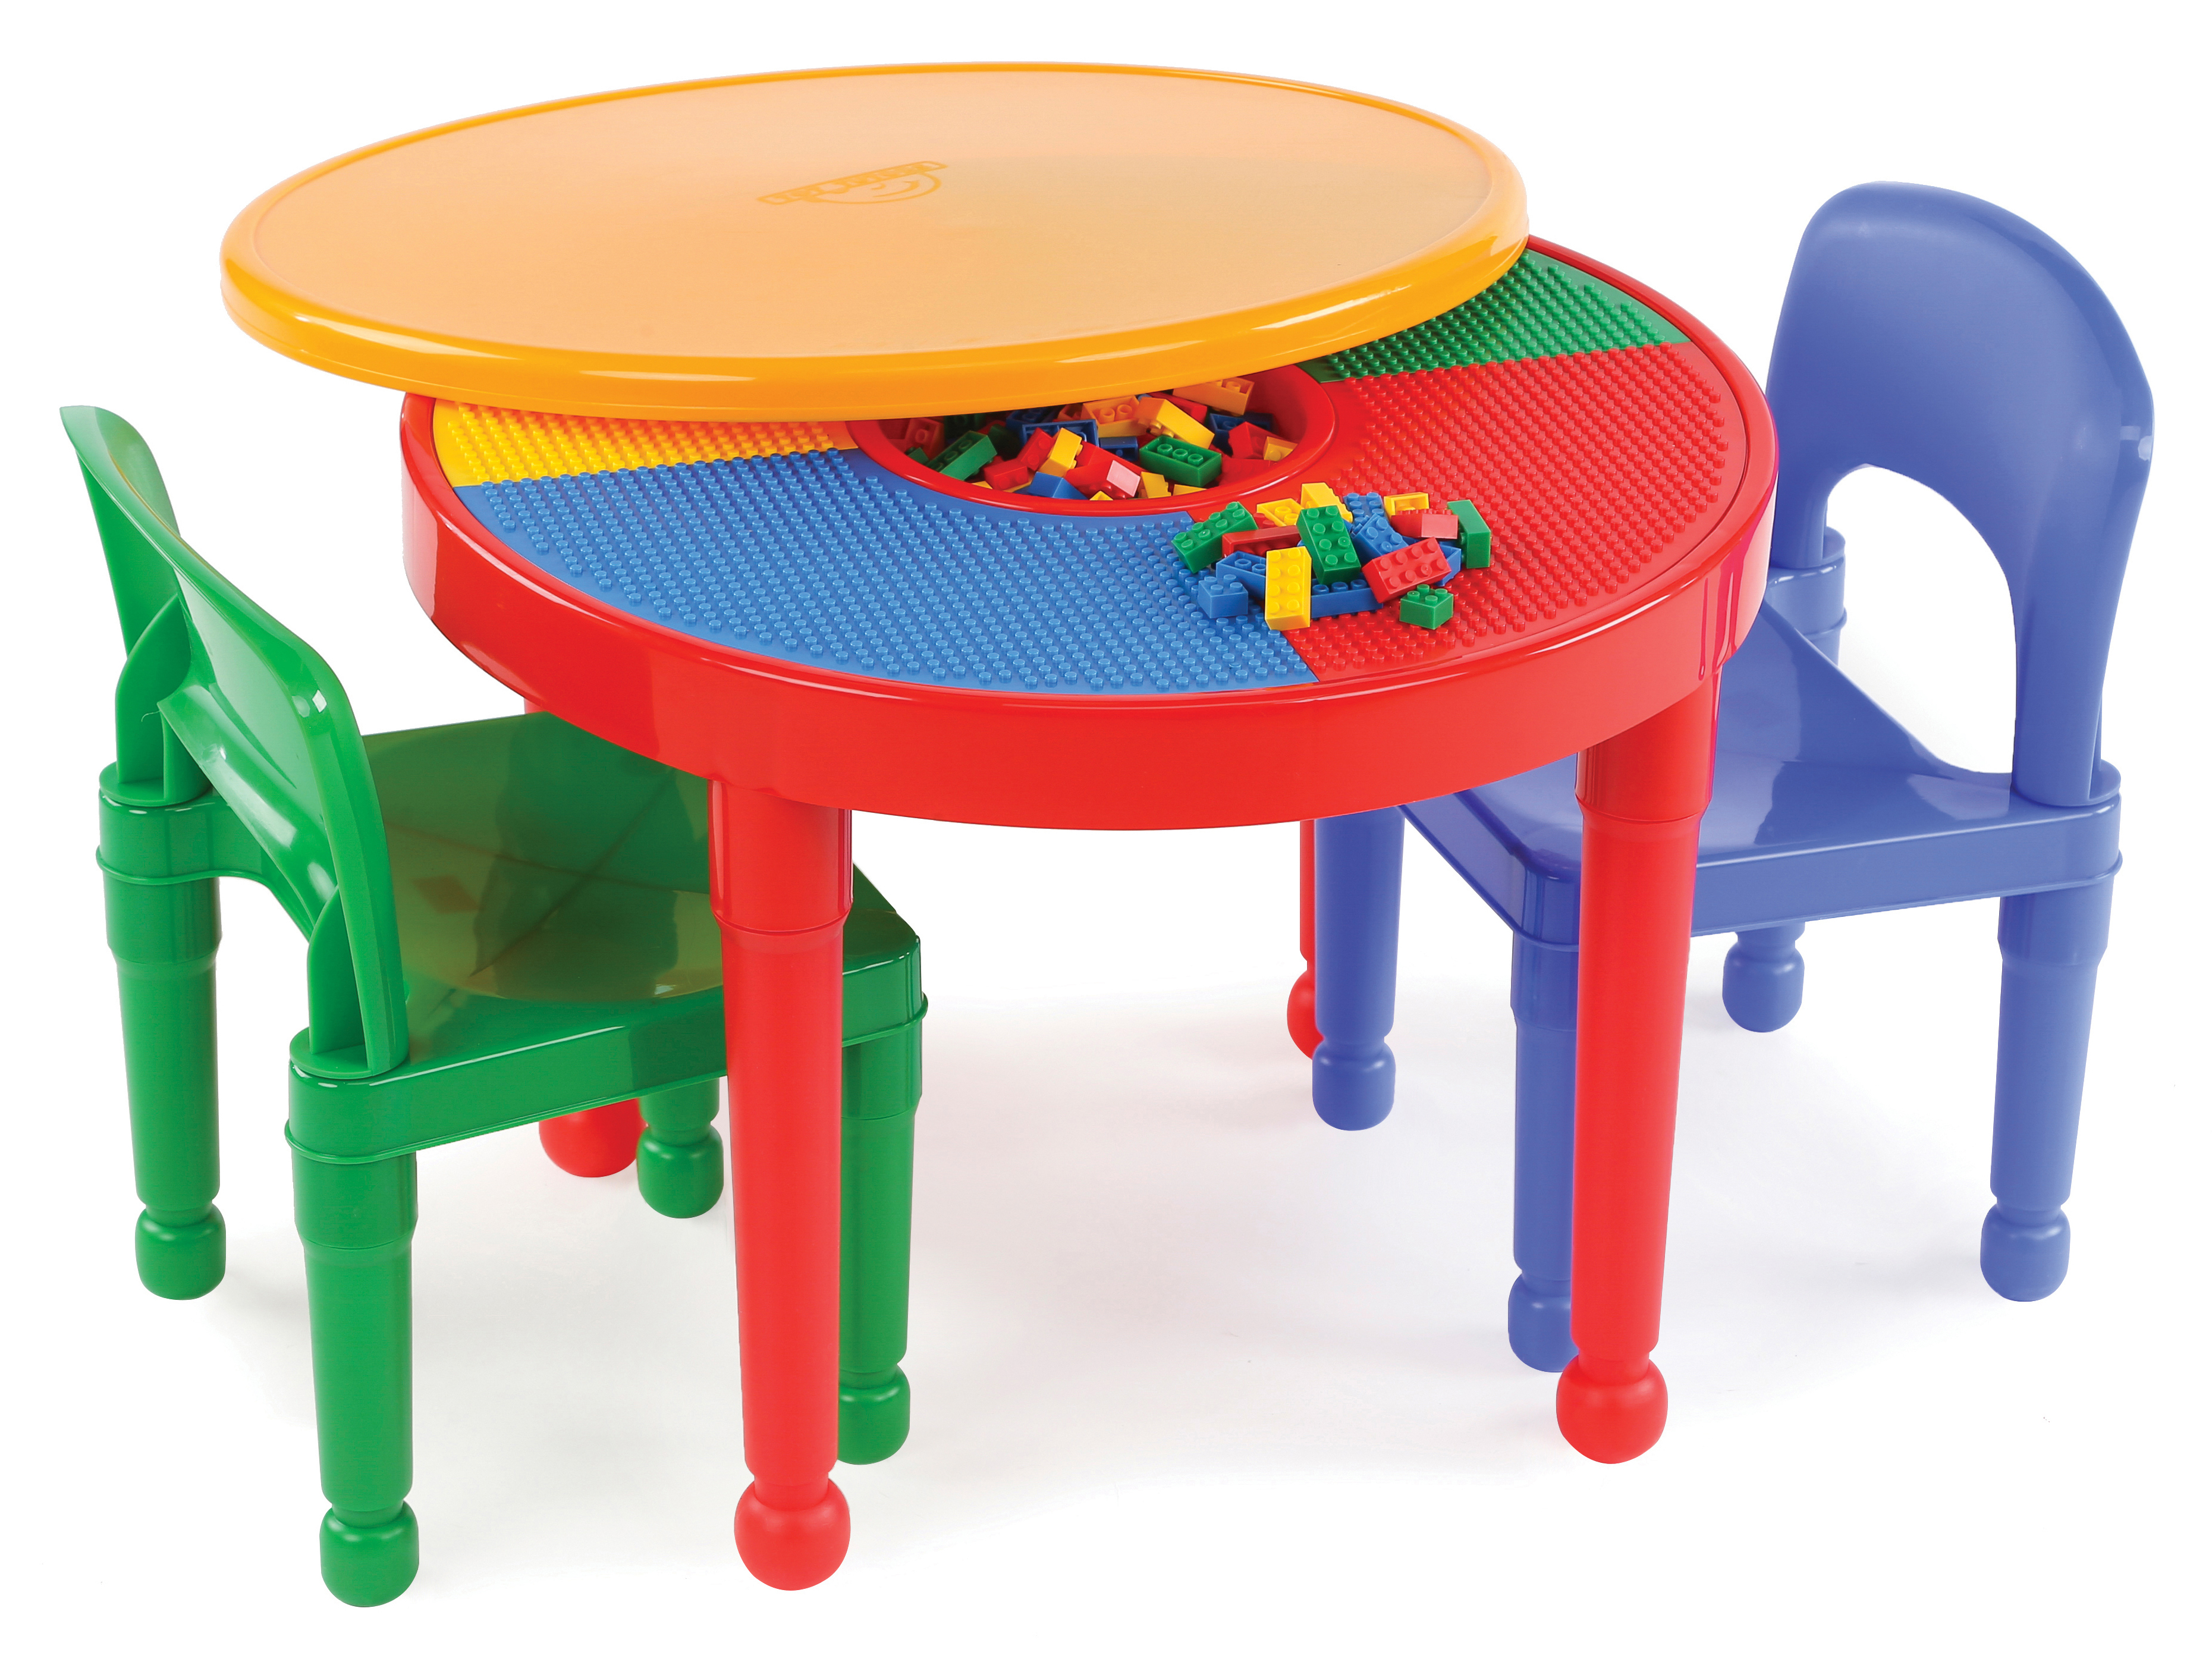 Plastic Kids Table and Chair Set